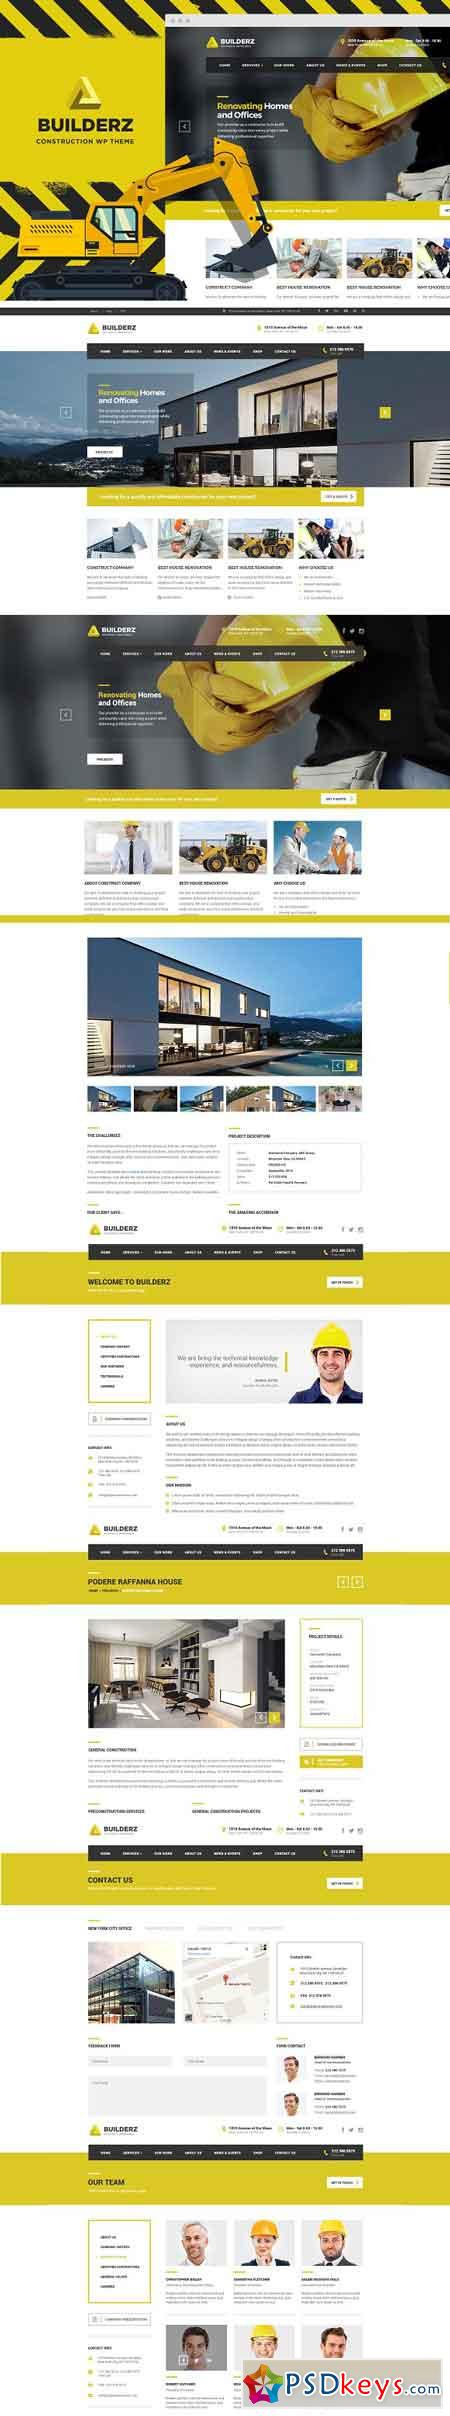 Builderz - Construction WP Theme 2533249